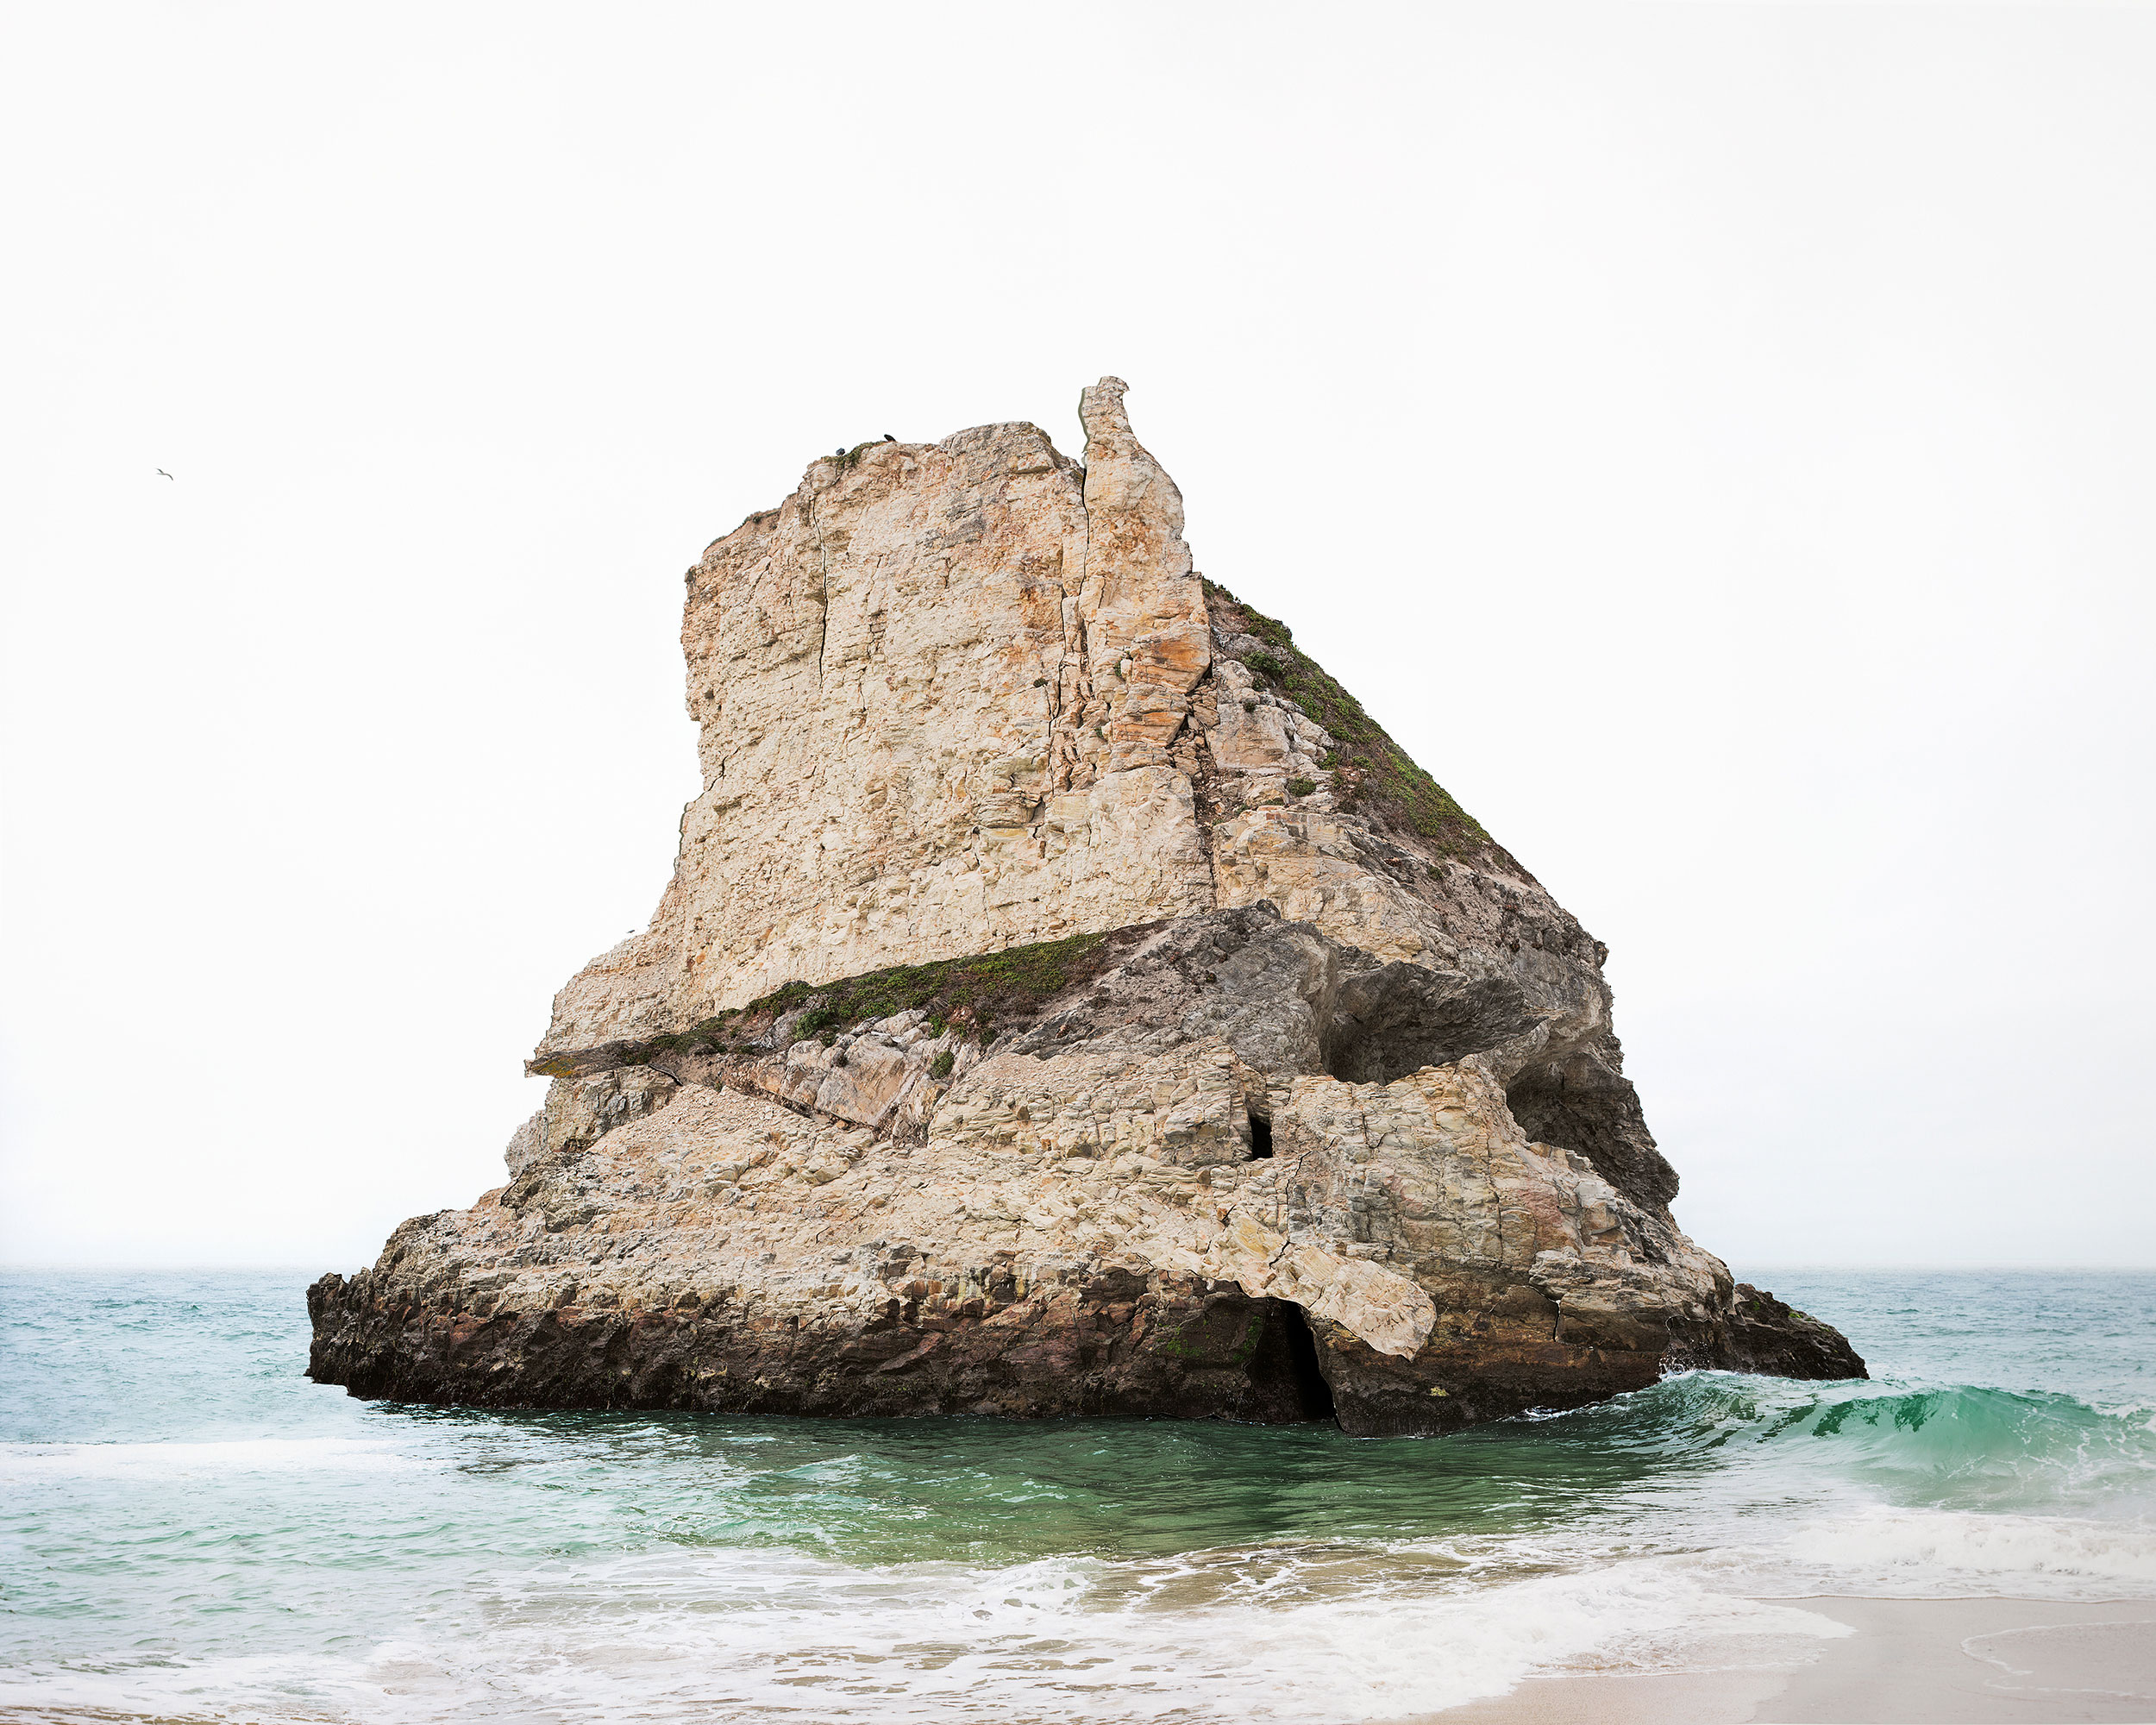 Laura Plageman,  Response to Print of Davenport Island, California , 2014  Digital pigment print, 40 x 50 in, edition of 4; 20 x 25 in, edition of 5   Inquire